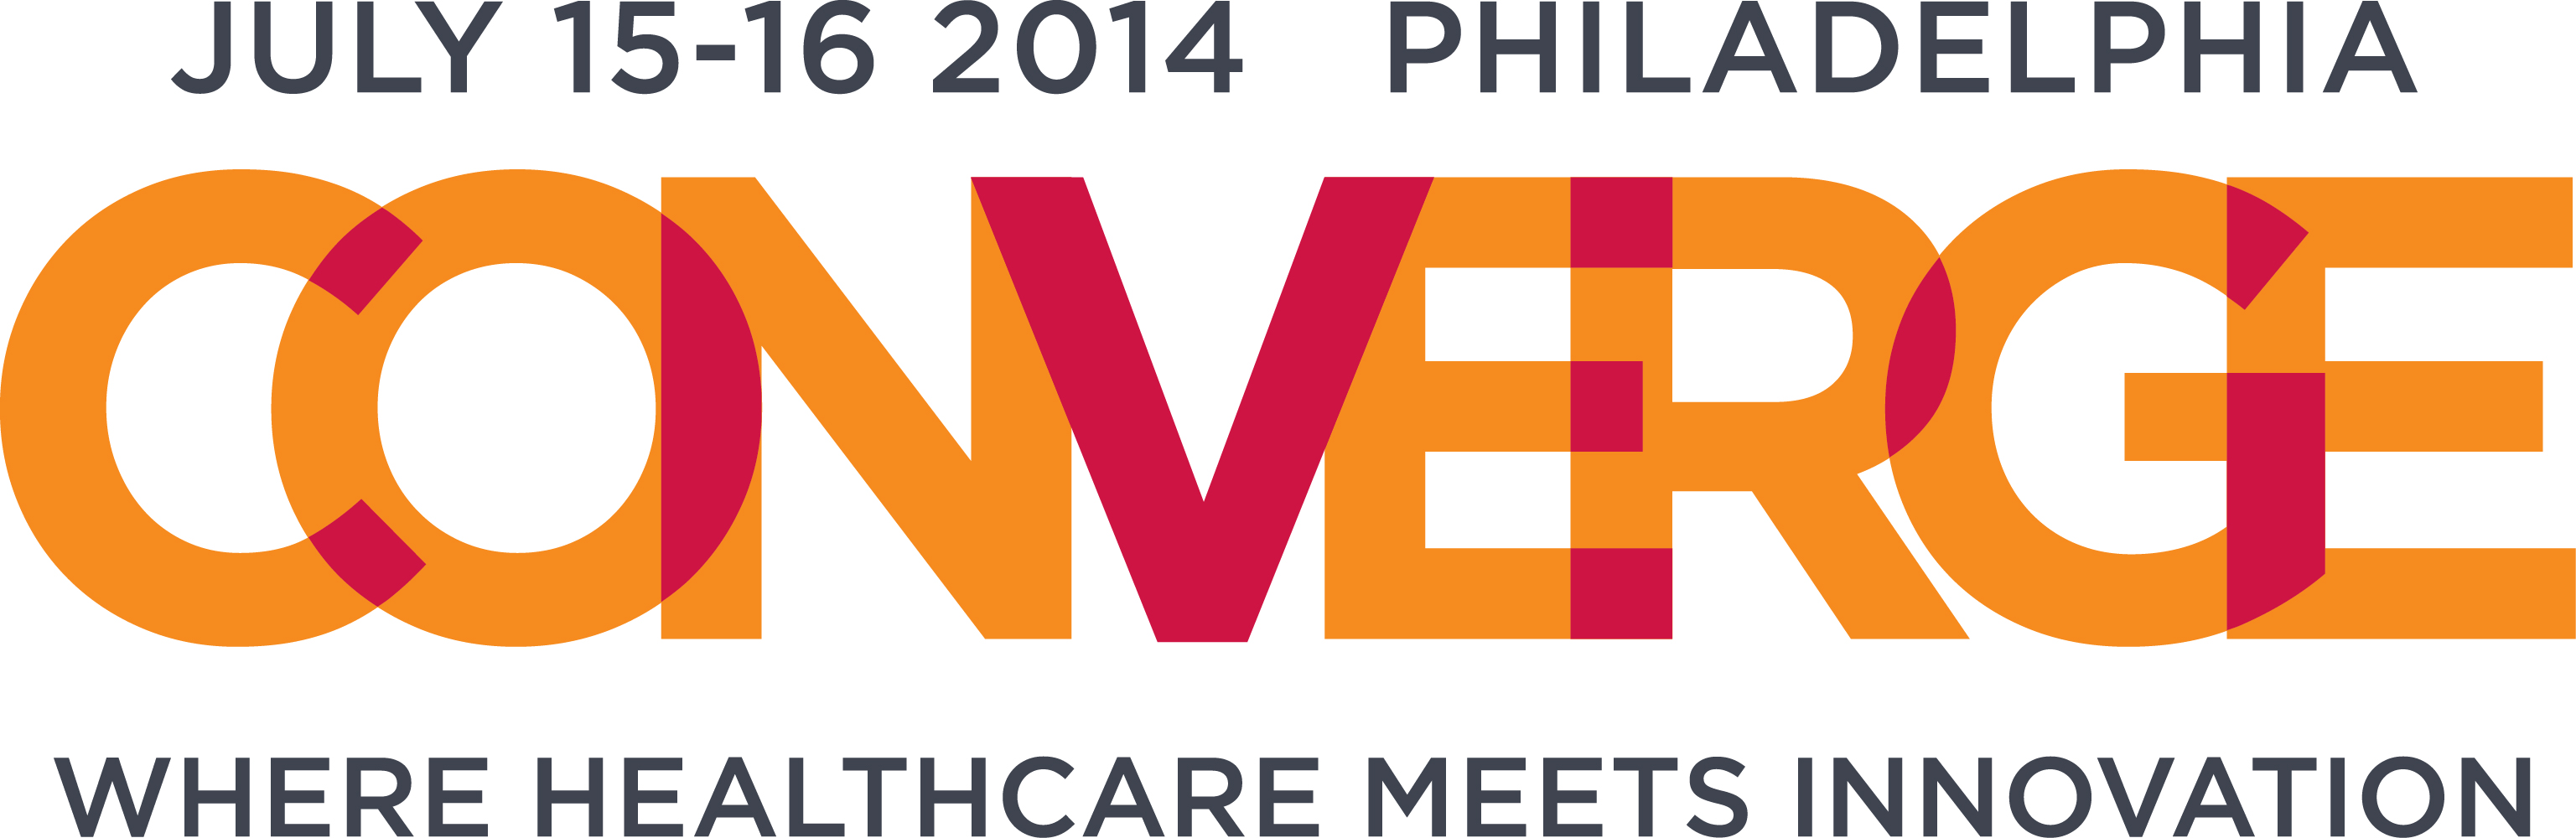 7 reasons you need to be at MedCity CONVERGE (along with the rest of the healthcare ecosystem)